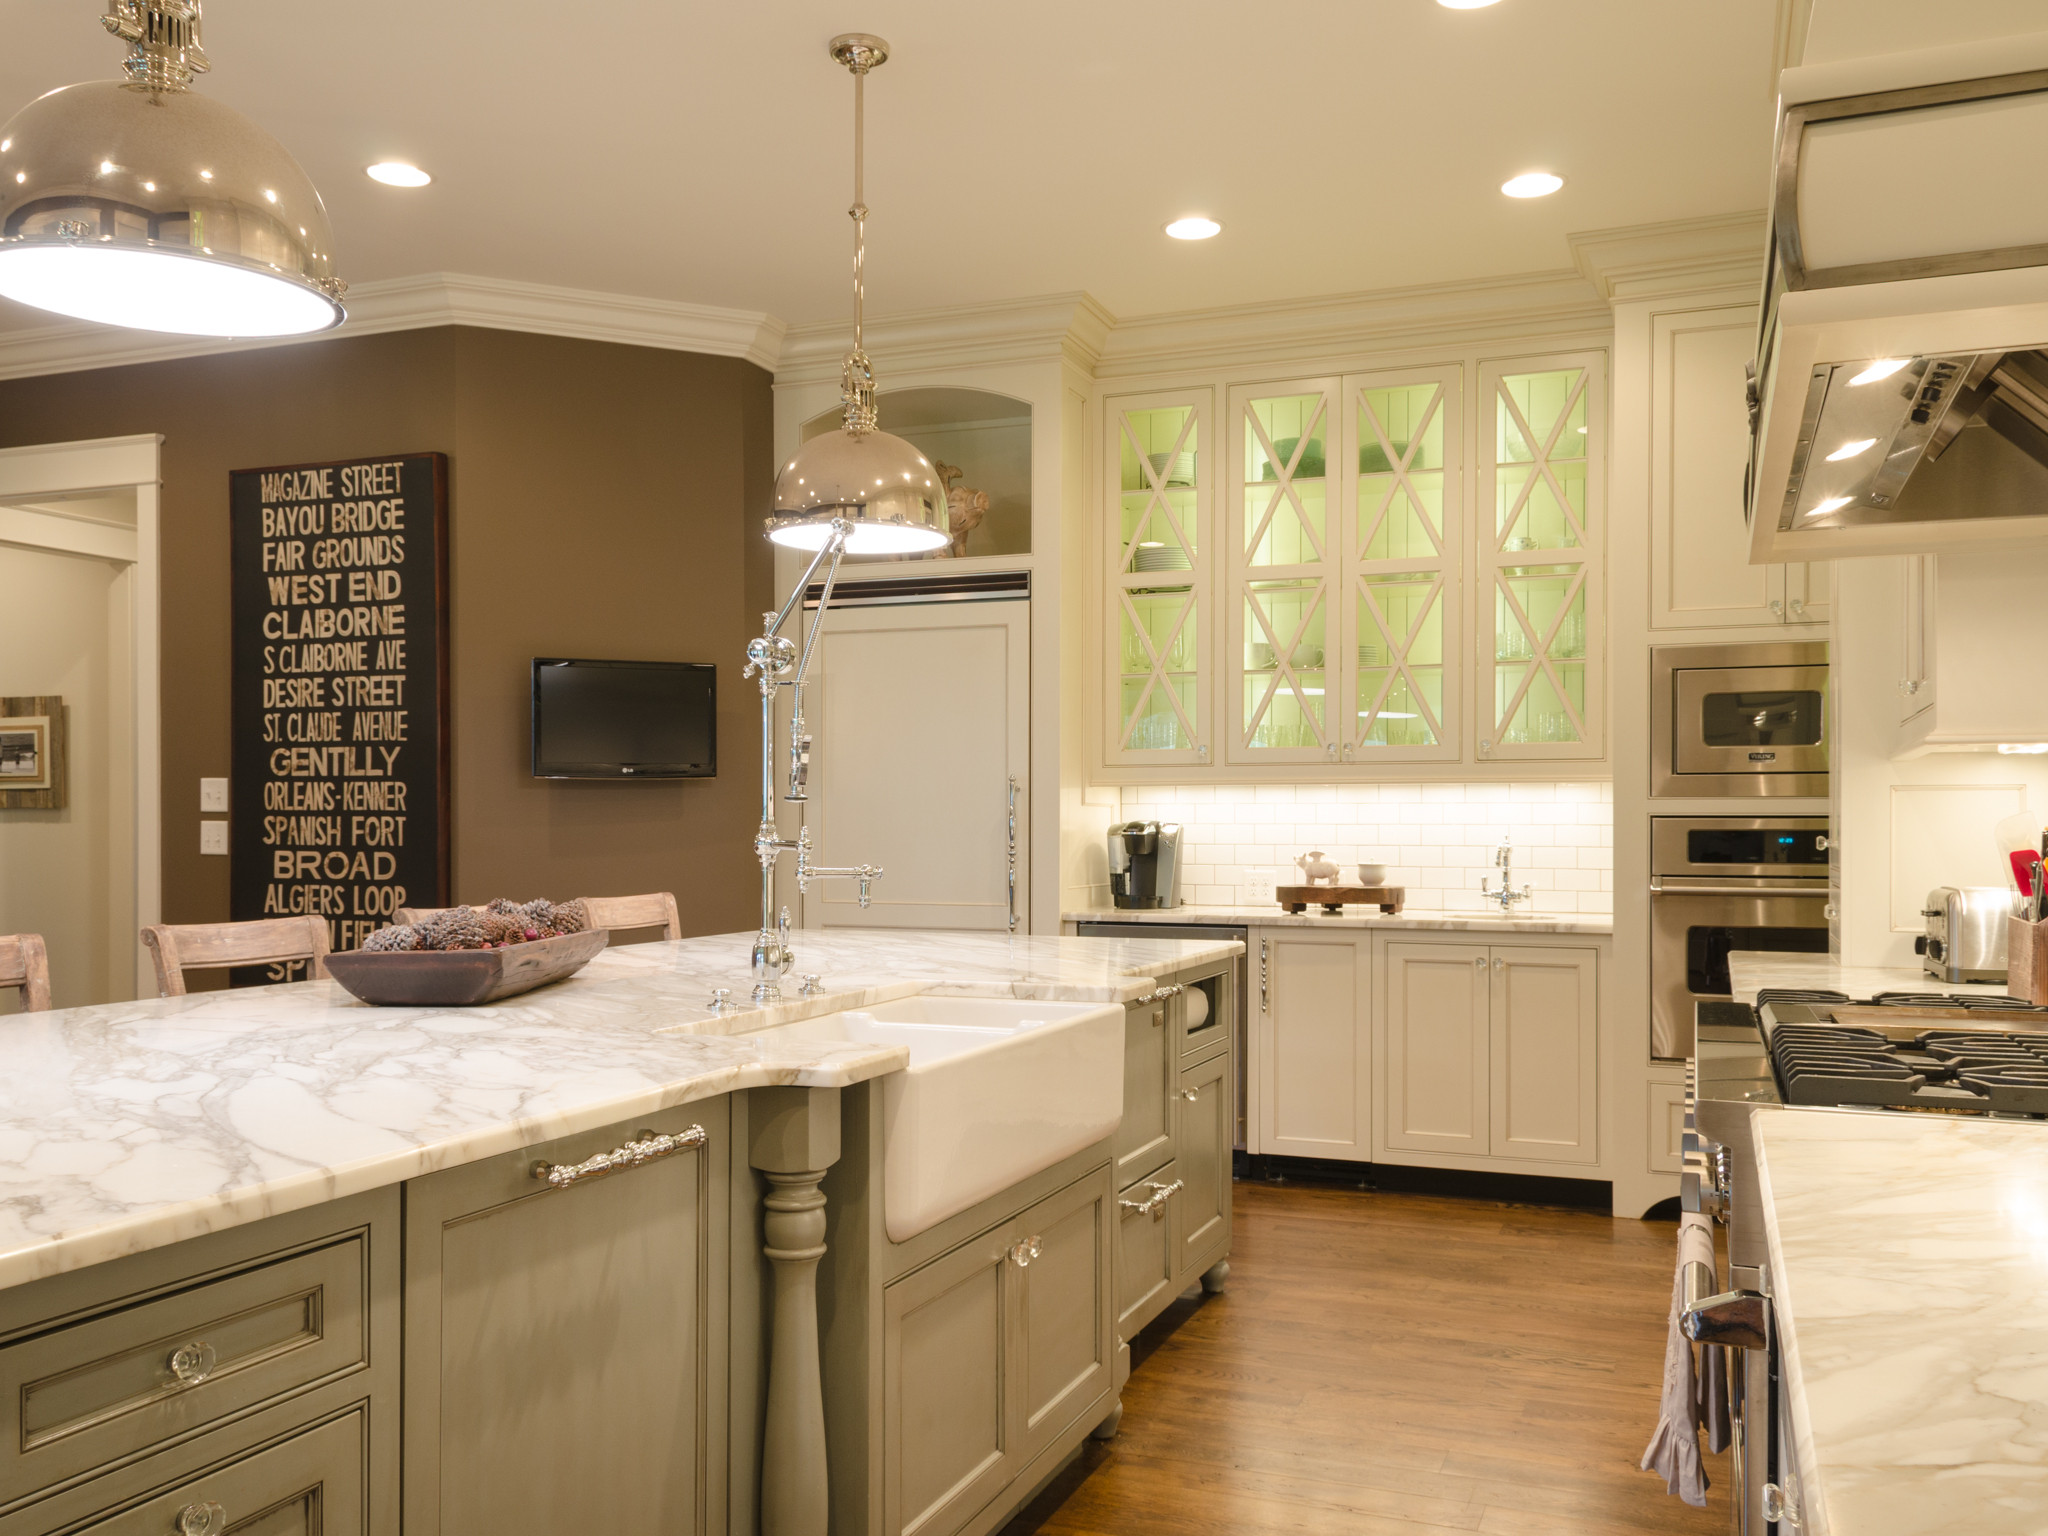 Best ideas about Remodeling Kitchen Ideas . Save or Pin Home Interior Design Modern Architecture Now.